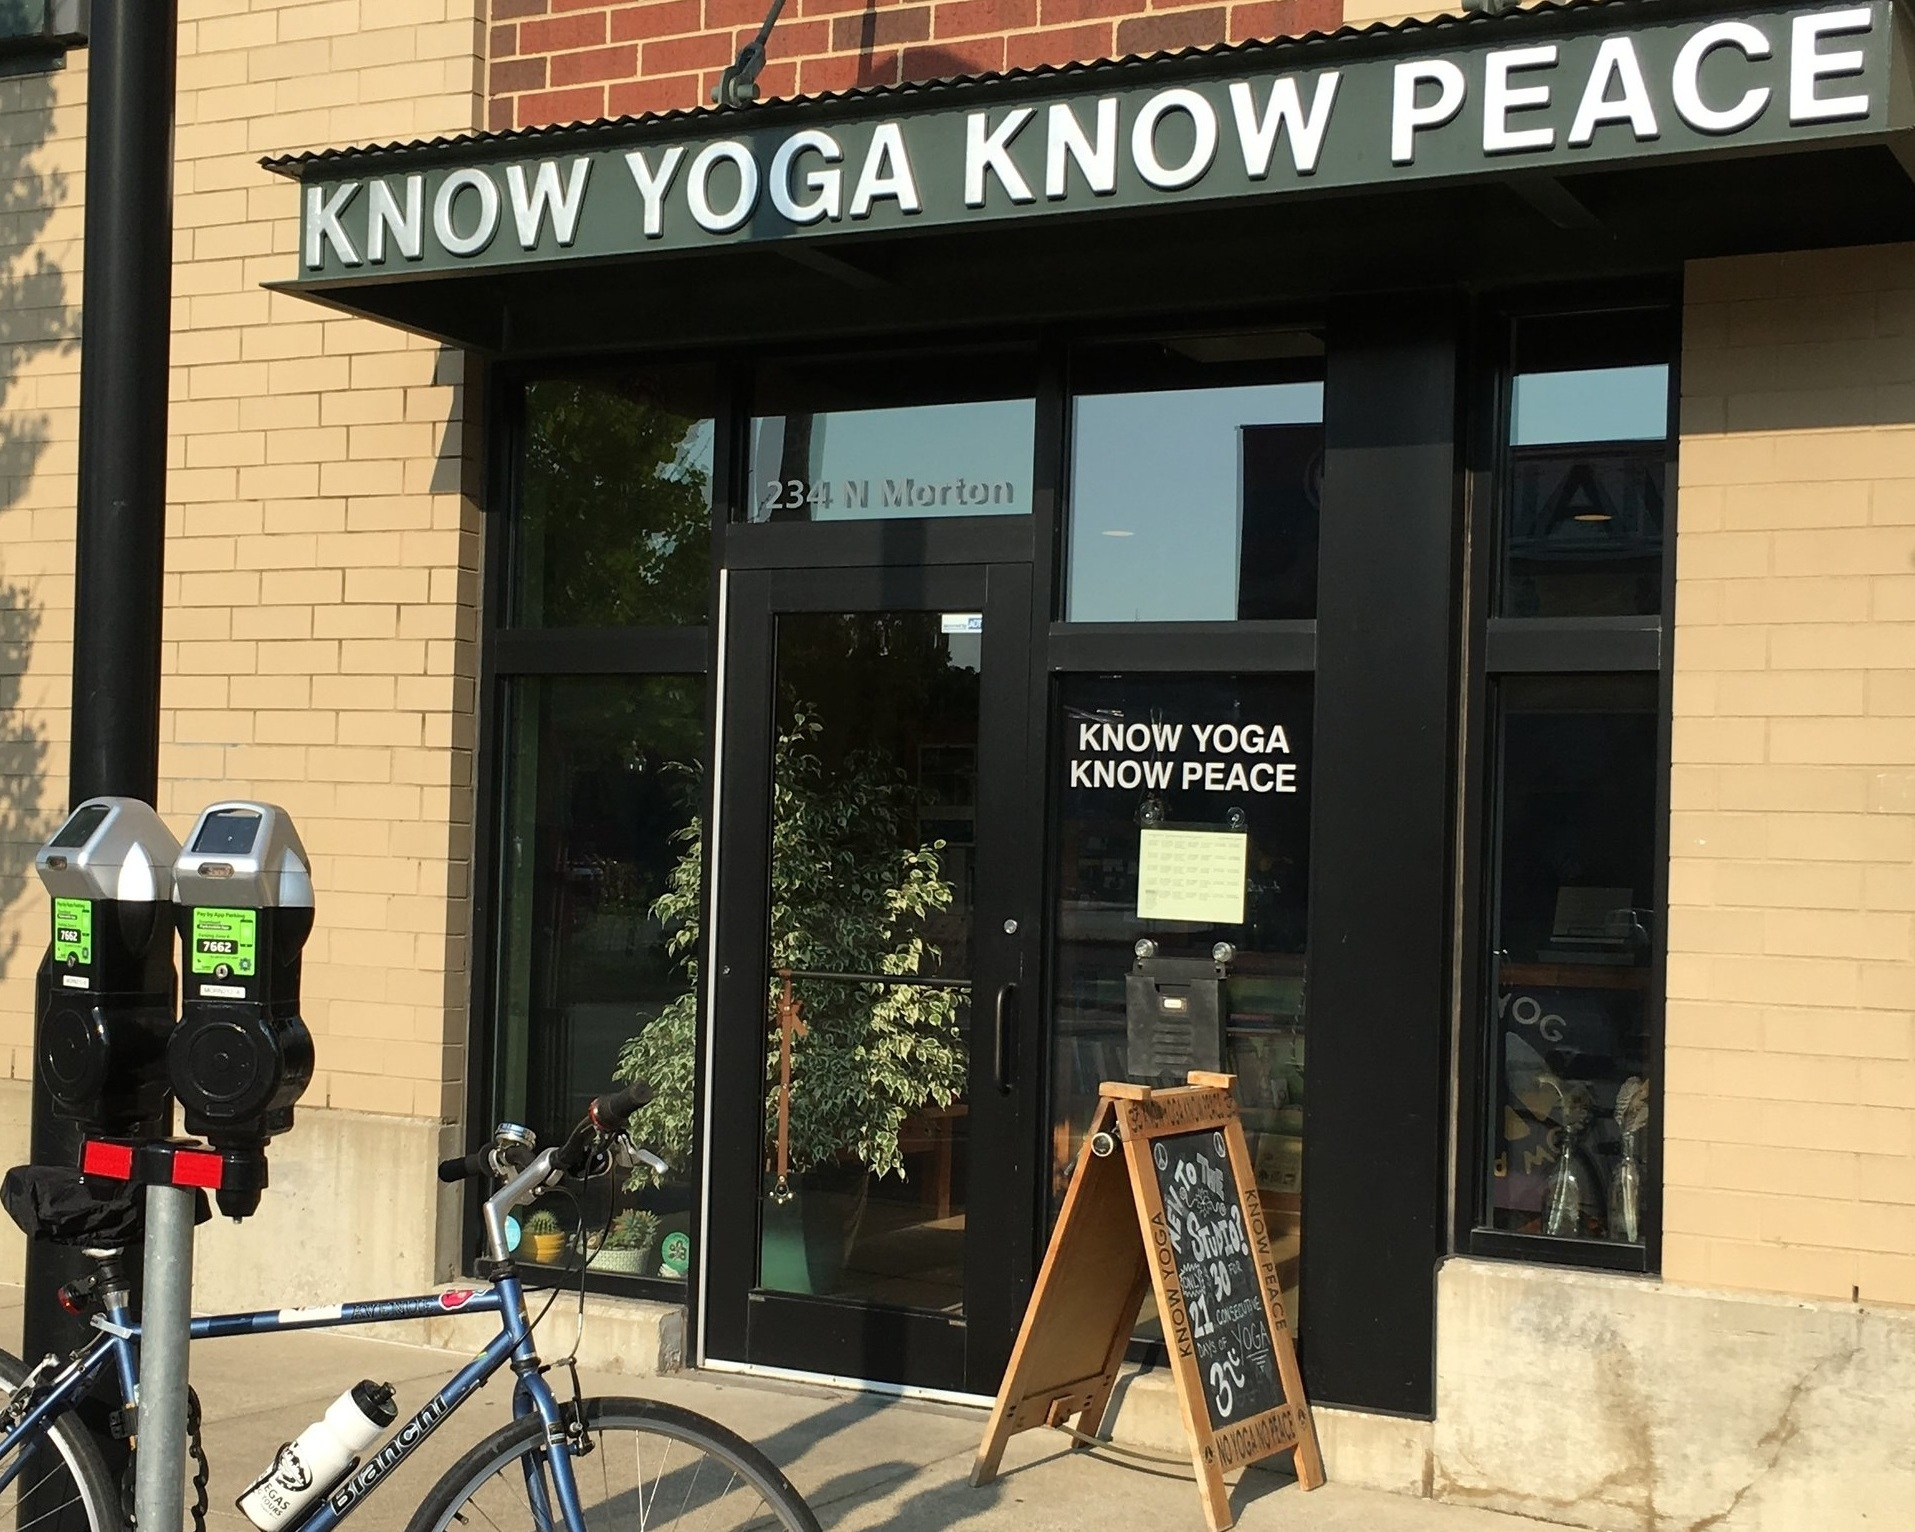 New Student Special - KYKP Yoga Studio in Bloomington, Indiana, IN - Hot Yoga - Ghosh Hatha, Bikram, Vinyasa, Meditation